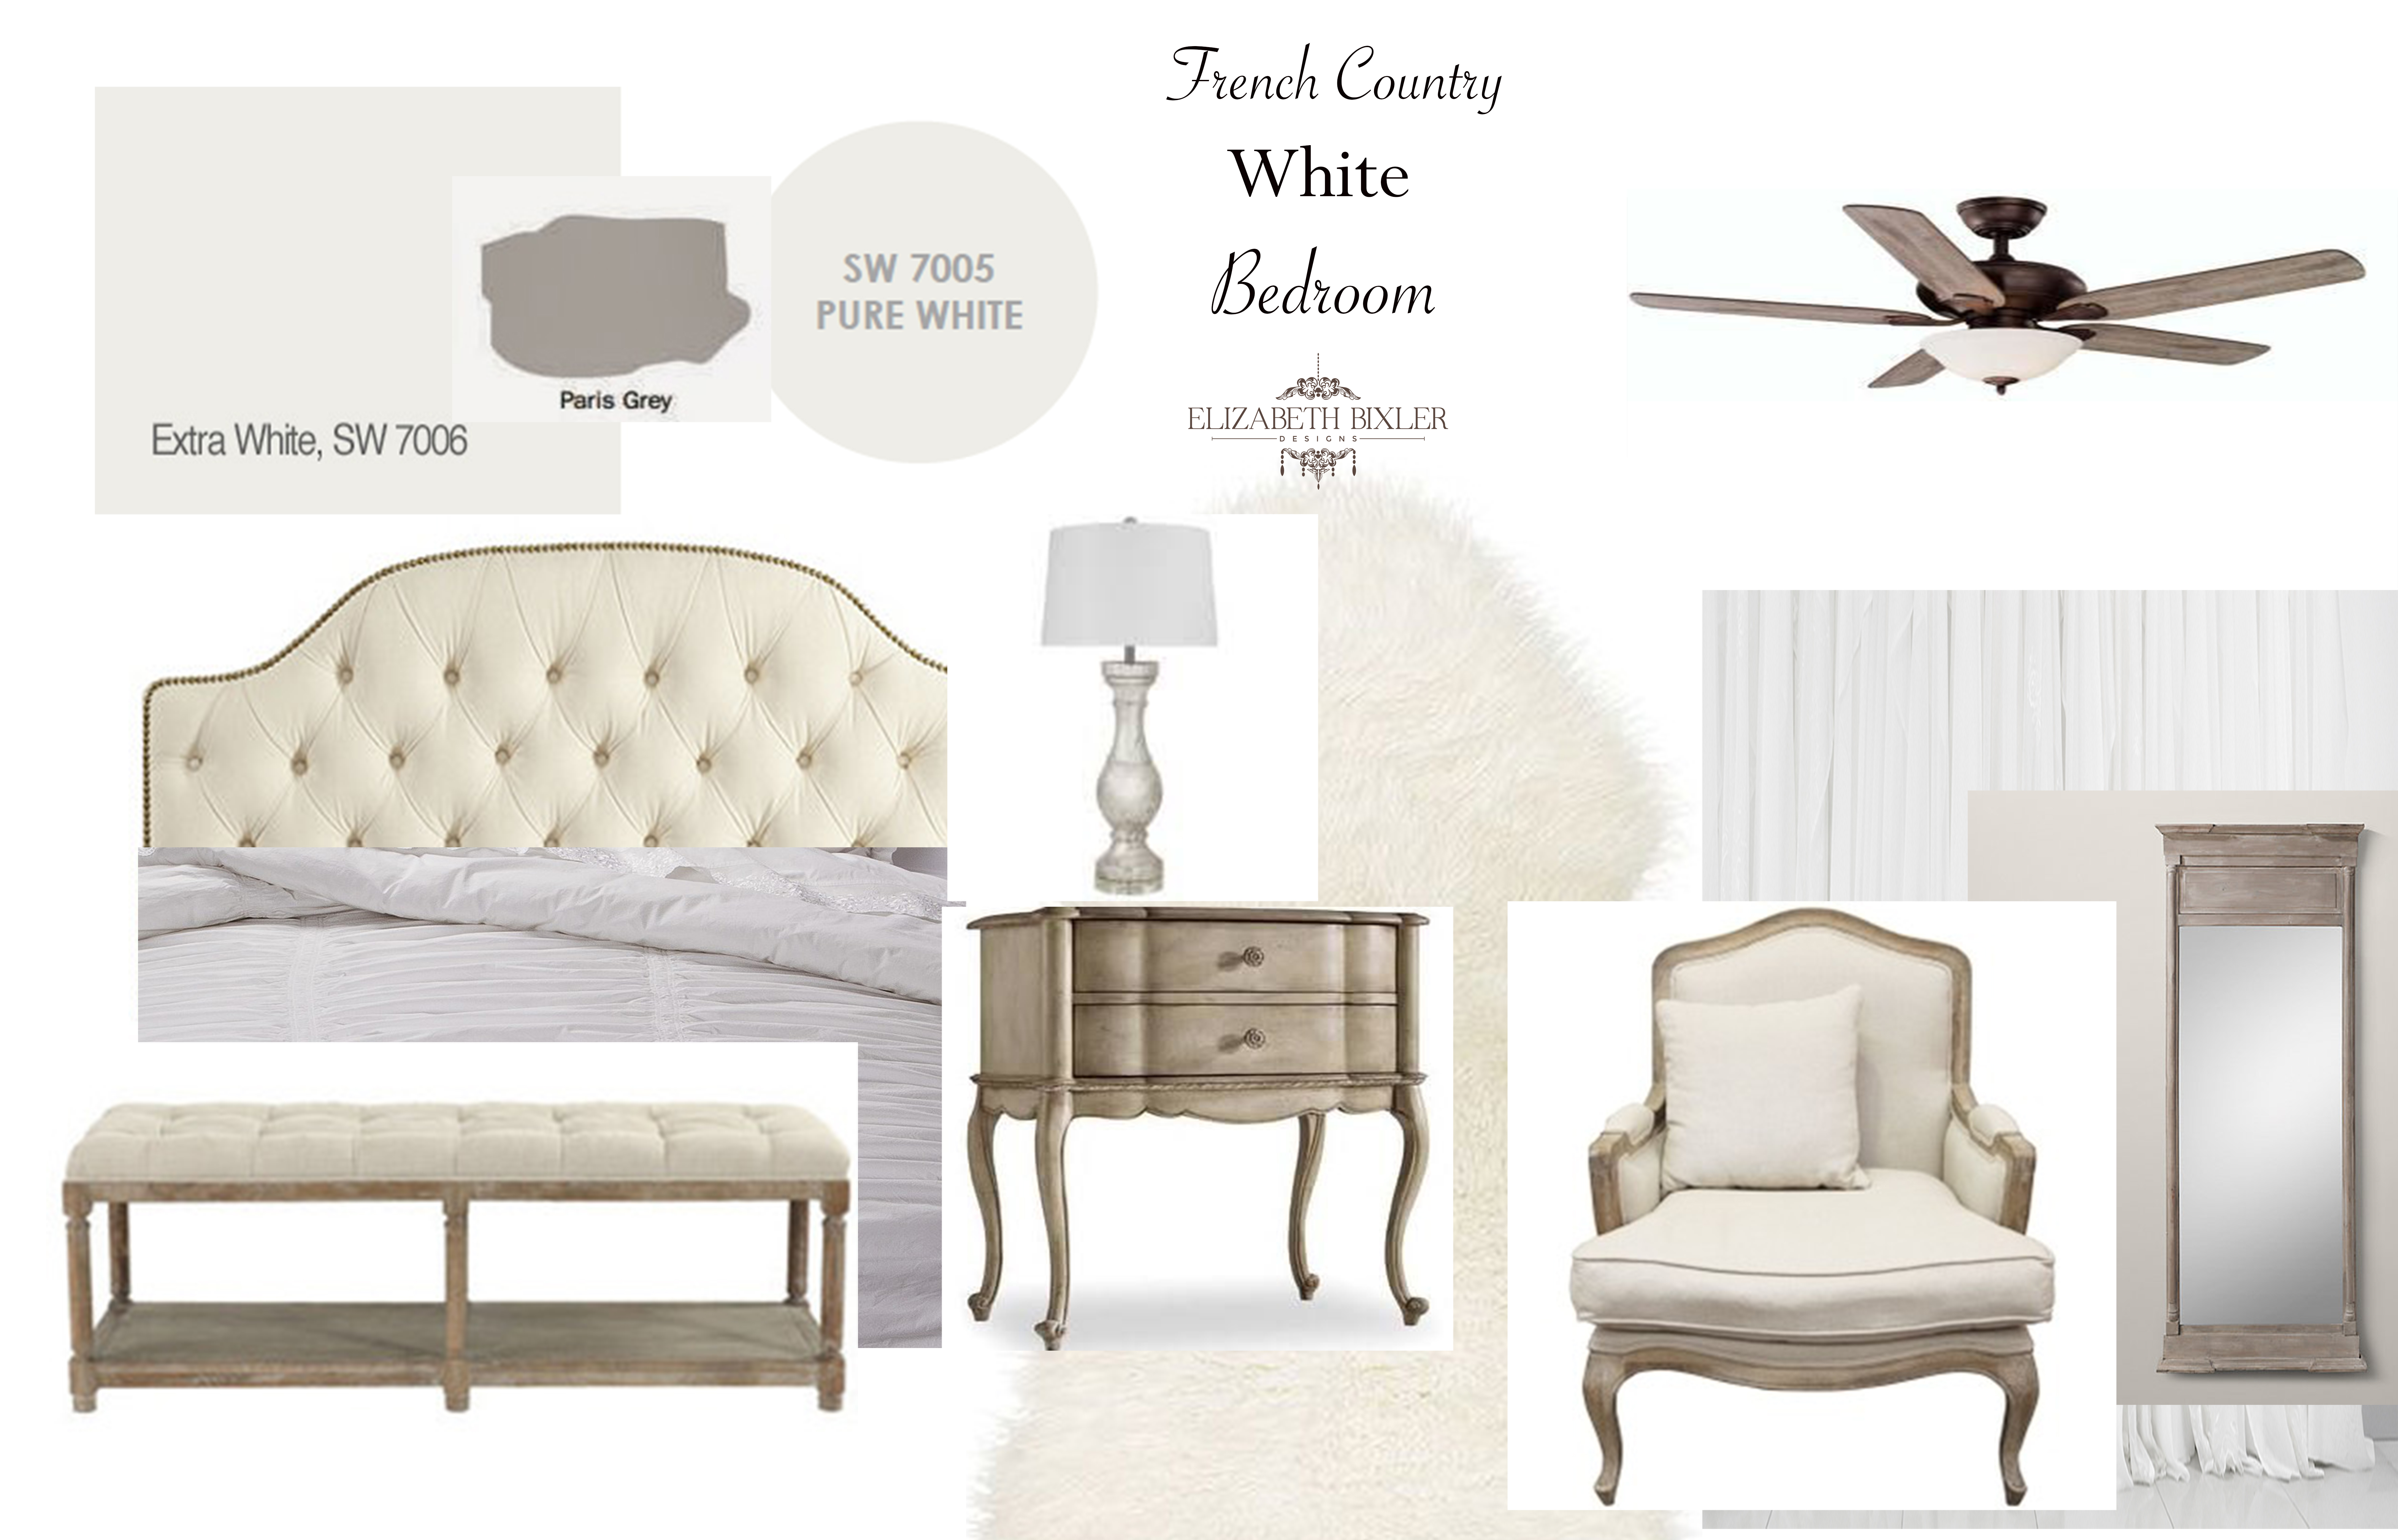 French country bedroom white - I Was Feeling Pretty French Country Today So Here Is My French Country Inspired White Bedroom Mood Board